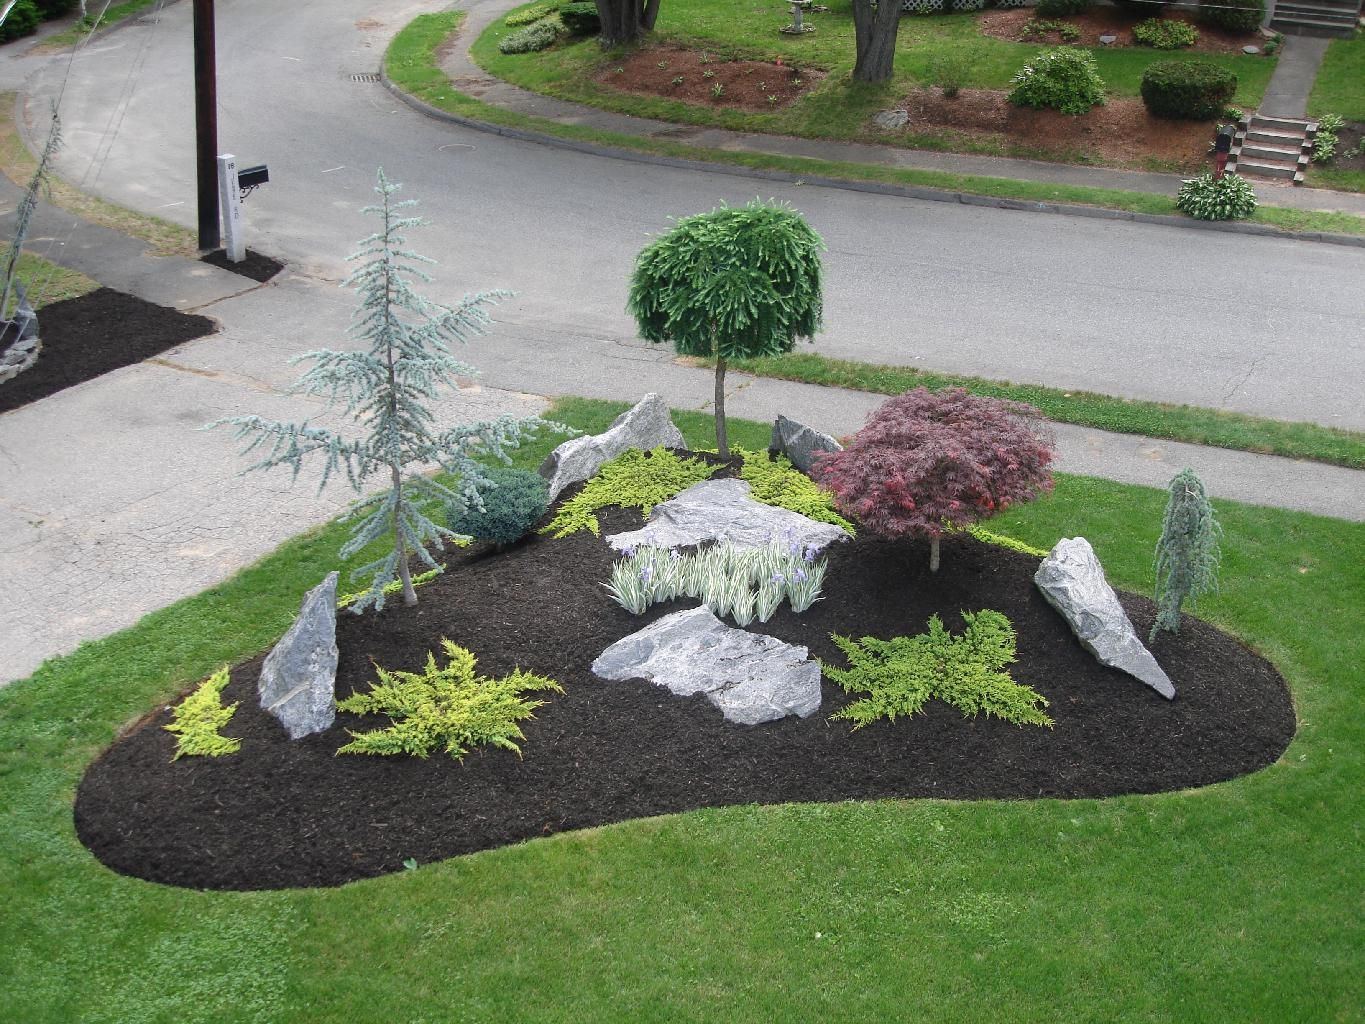 Simple landscape designs with rock beds google search for Garden design ideas new build